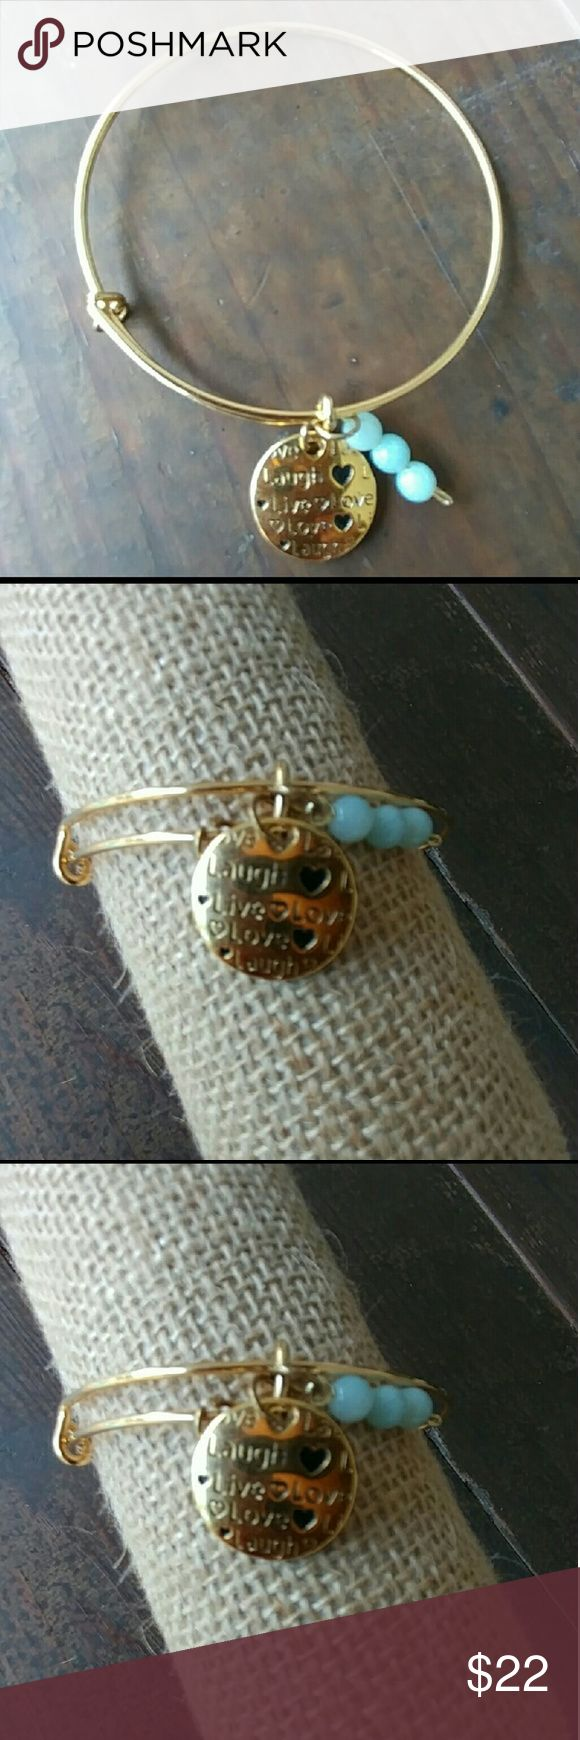 Dainty jewelry 18k gold plated bangle and charm Authentic aquamarine stones Live Laugh Love???????? Jewelry Bracelets